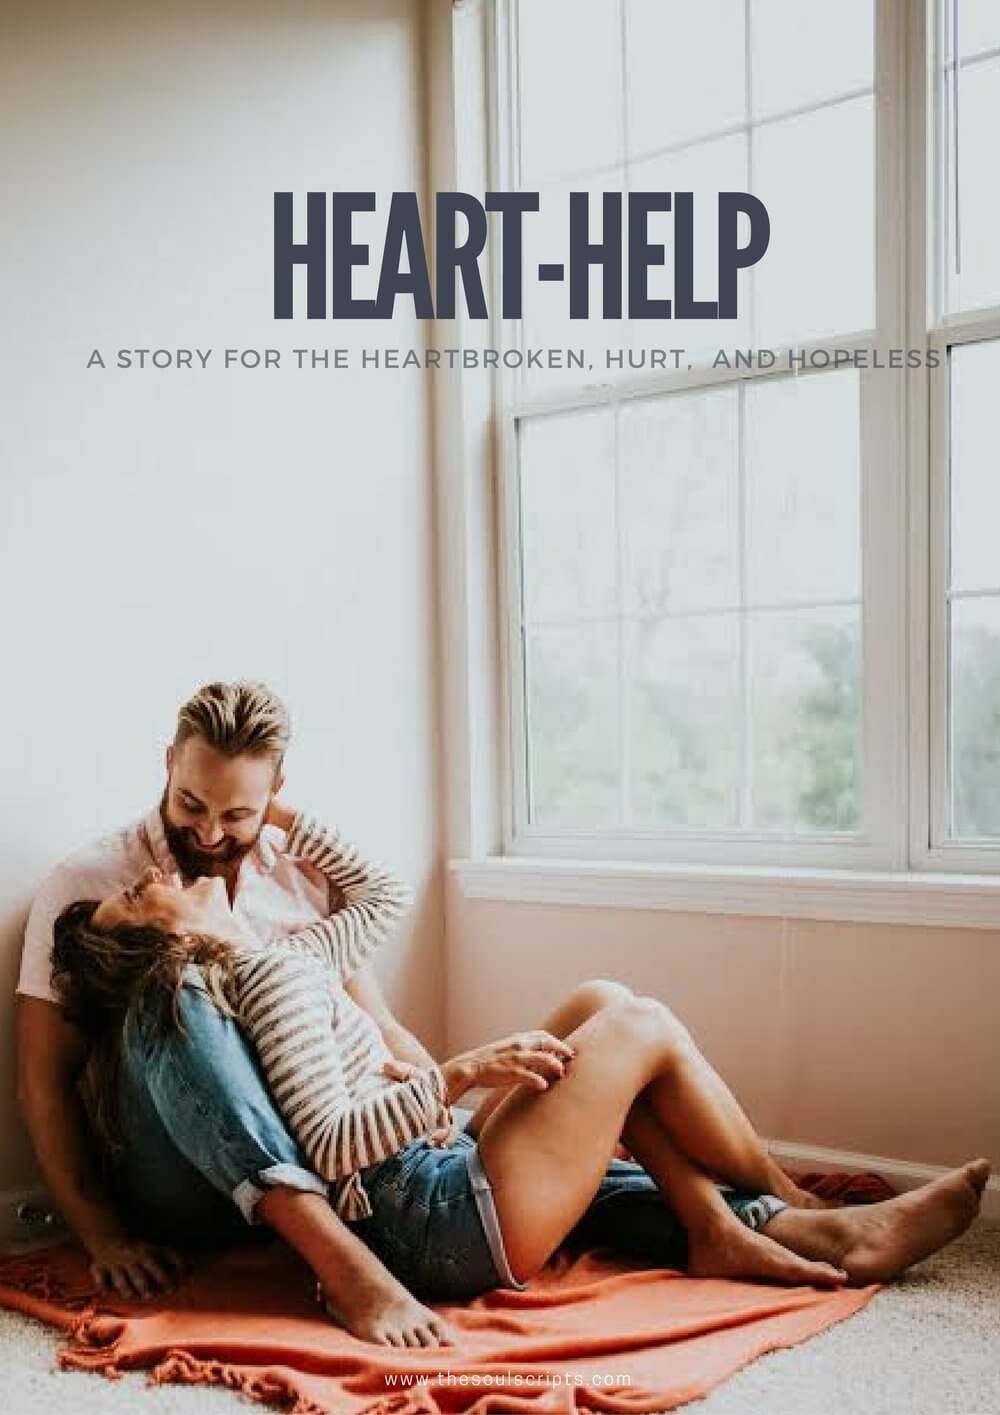 heart-help-story-for-heartbroken-hurt-hopeless